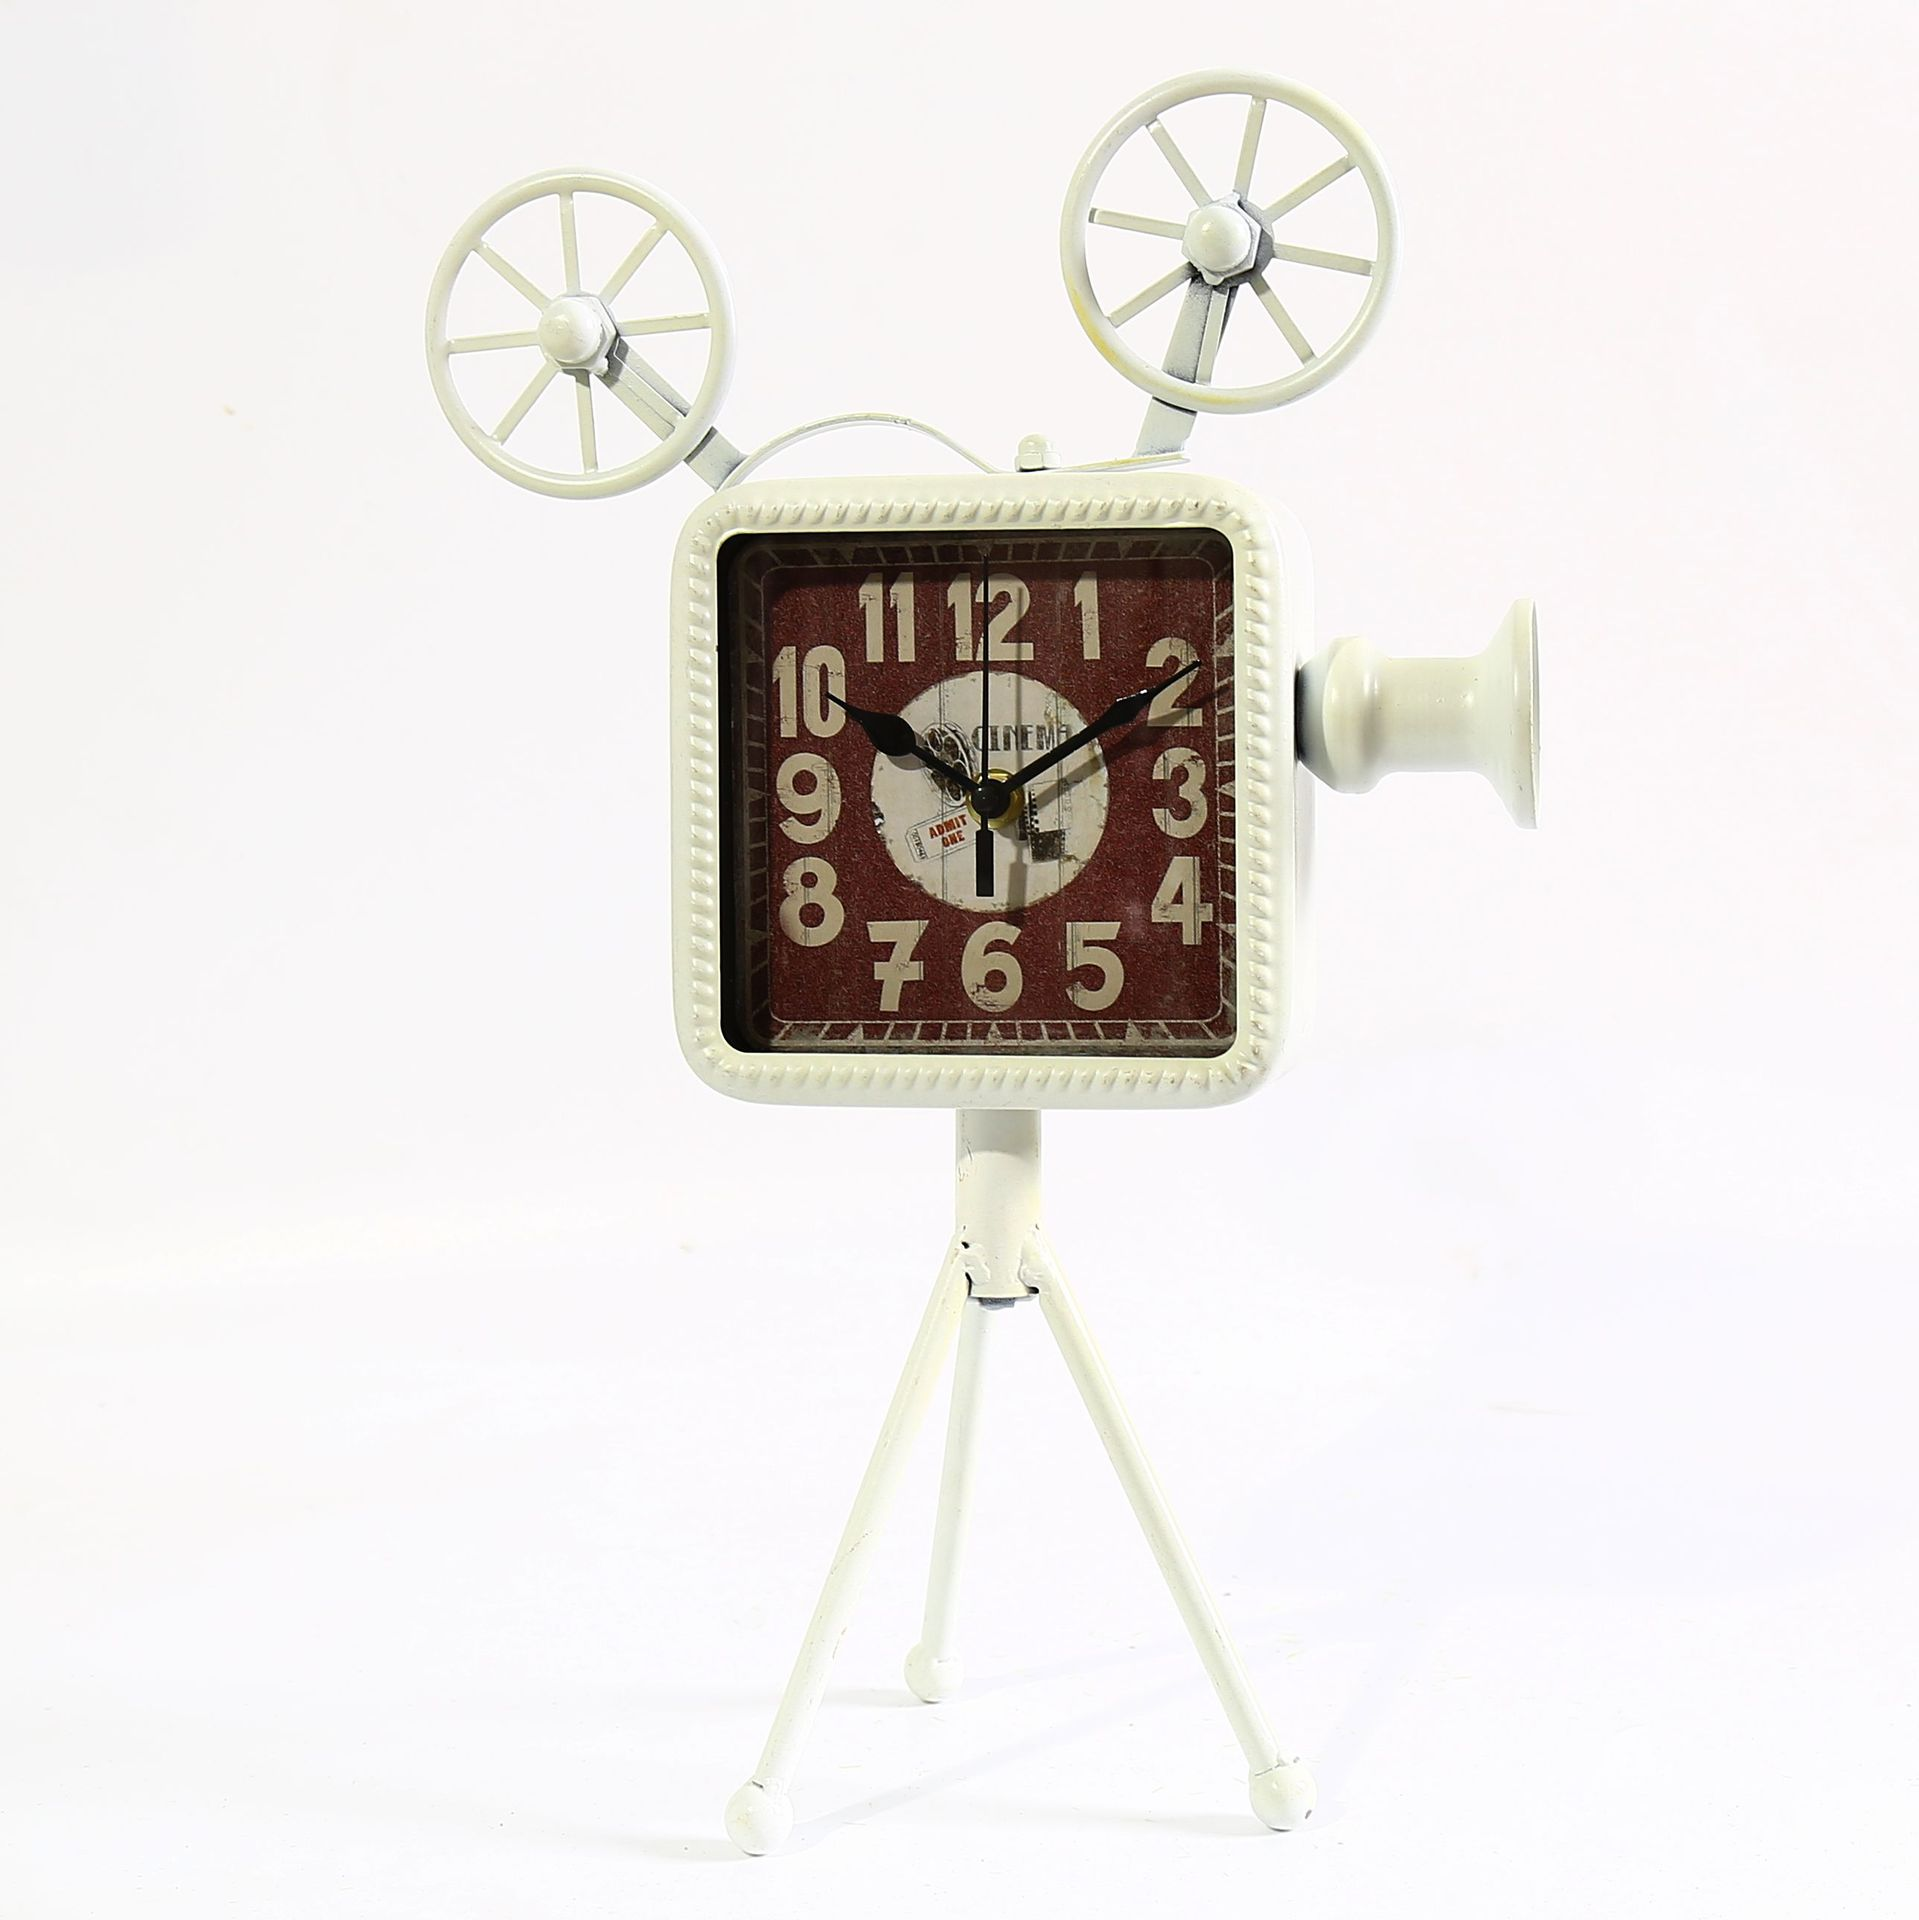 Shabby chic projector style vintage home decor bar cafe decoration shabby chic projector style vintage home decor bar cafe decoration antique clock table clock in floor clocks from home garden on aliexpress alibaba amipublicfo Images